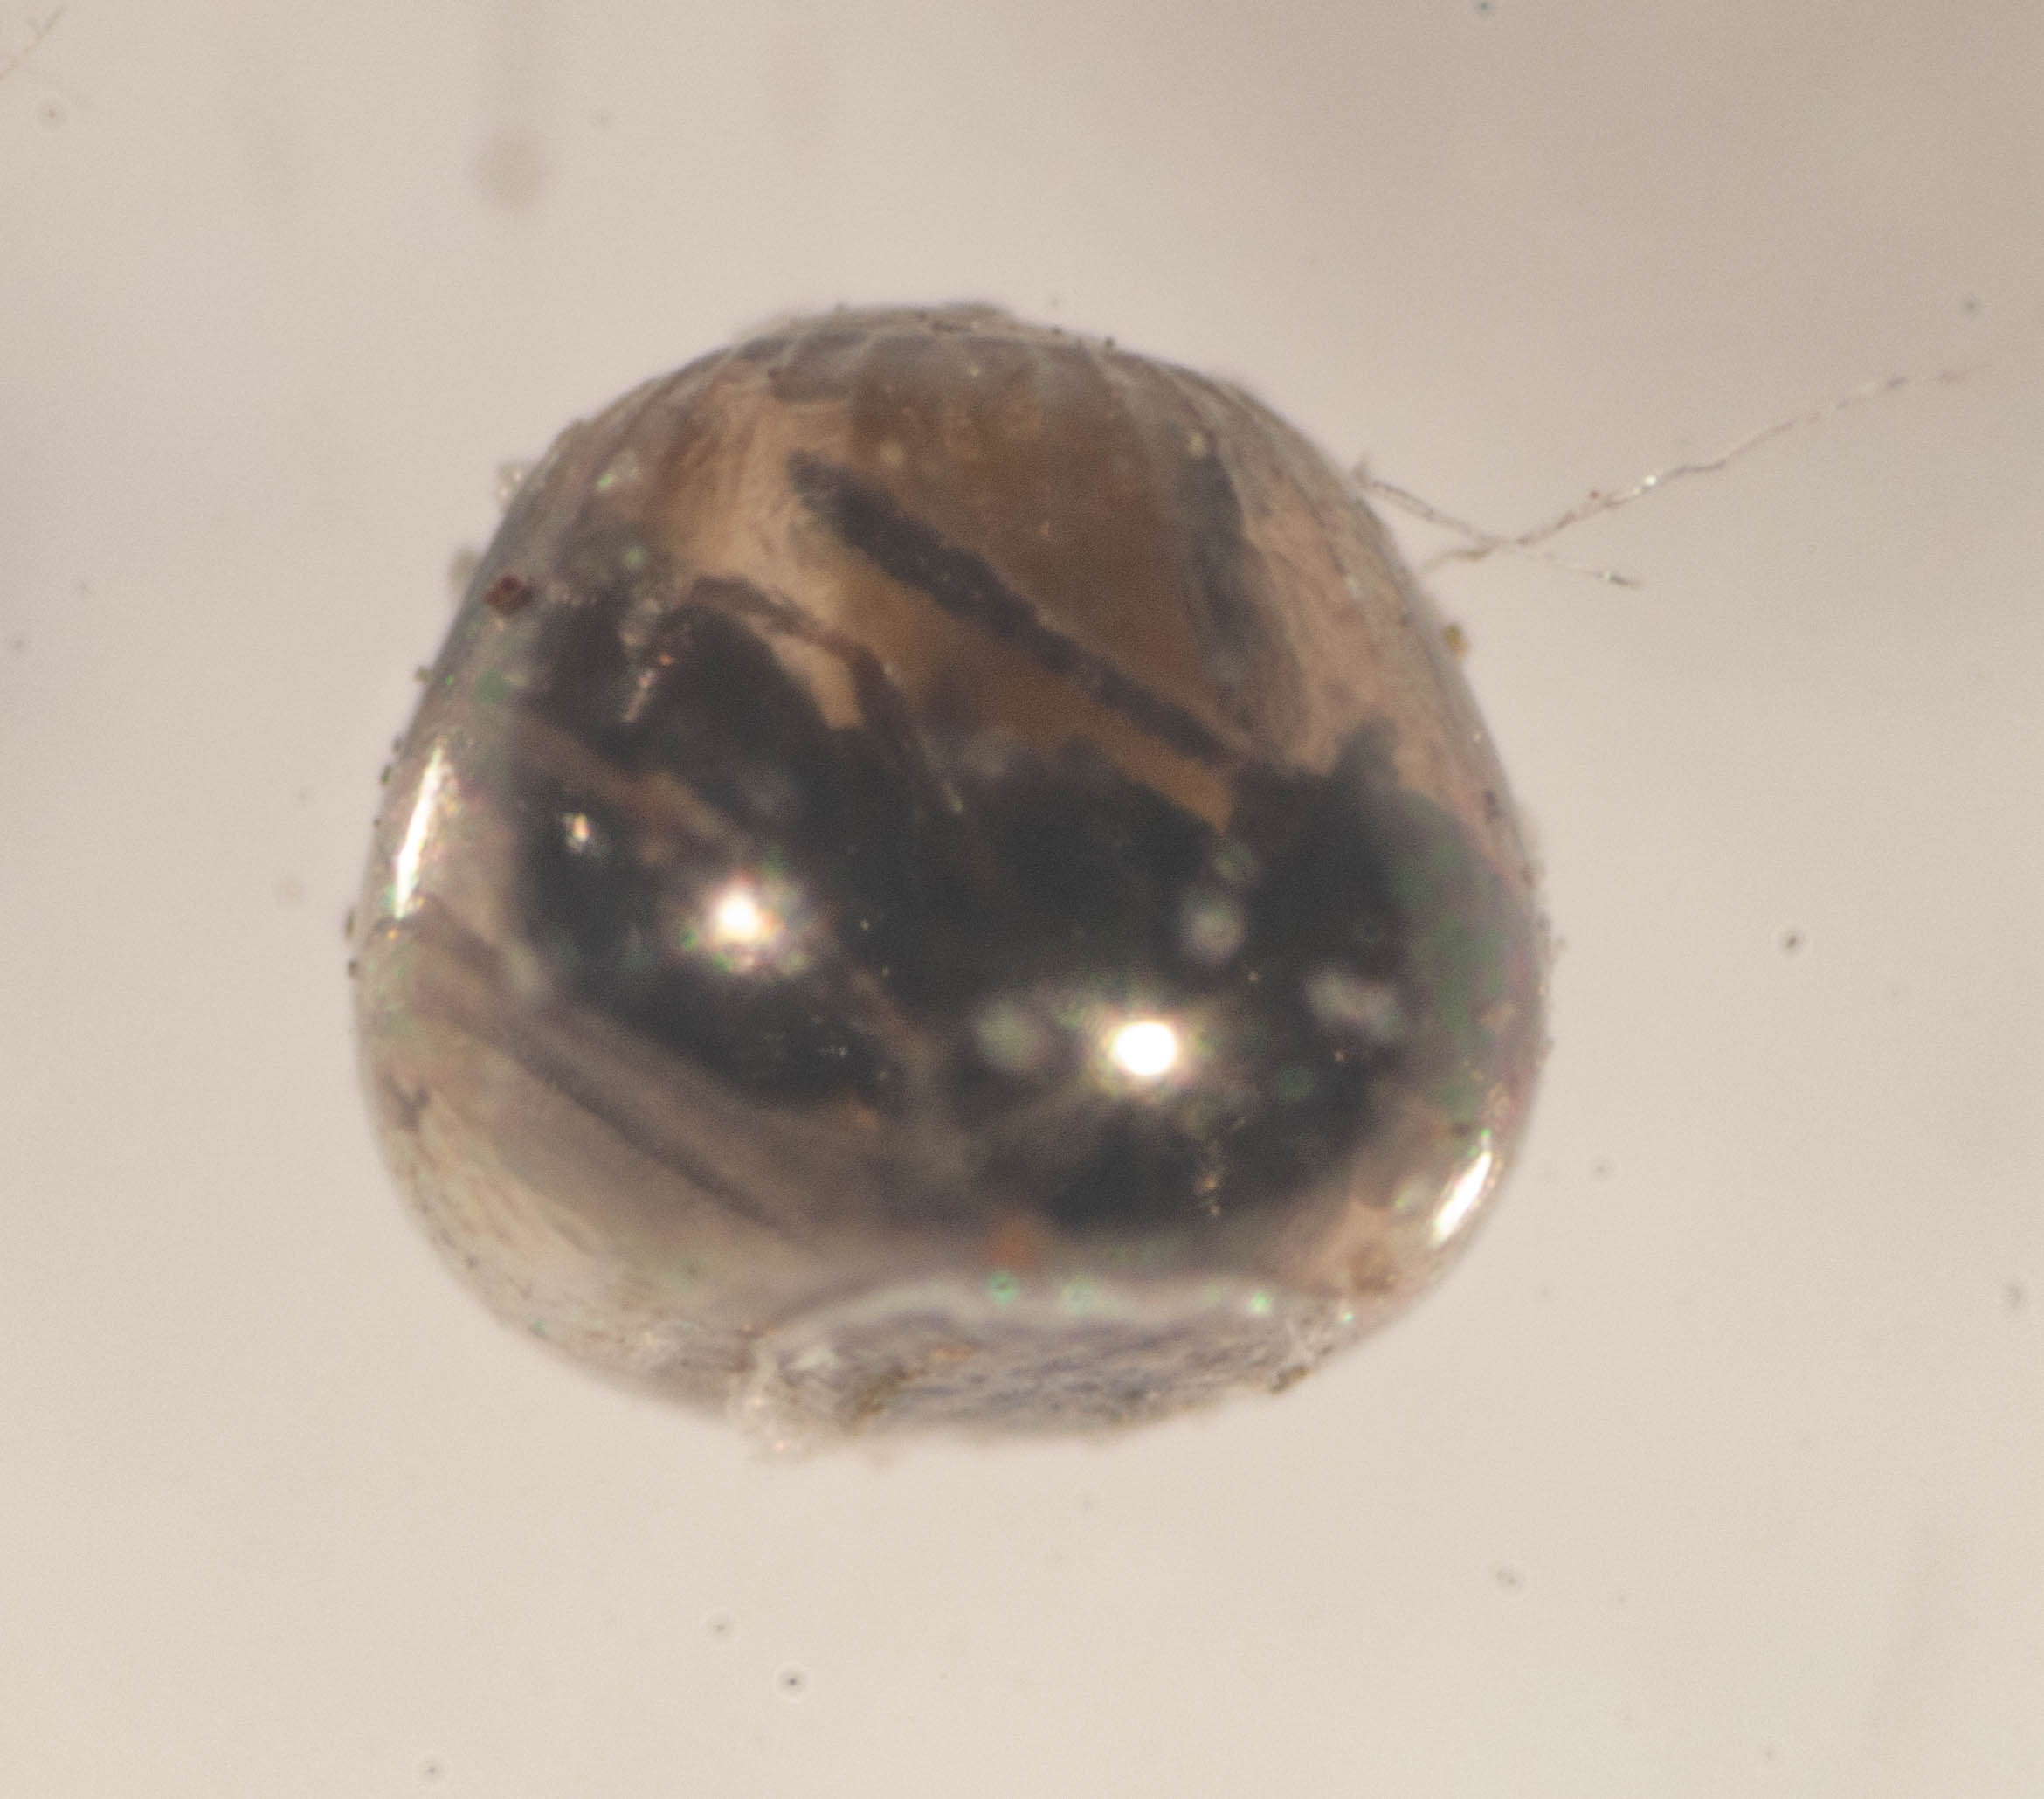 Day 17. The antennae have now turned black and changed shape. Pale wings can be seen below the dark body.